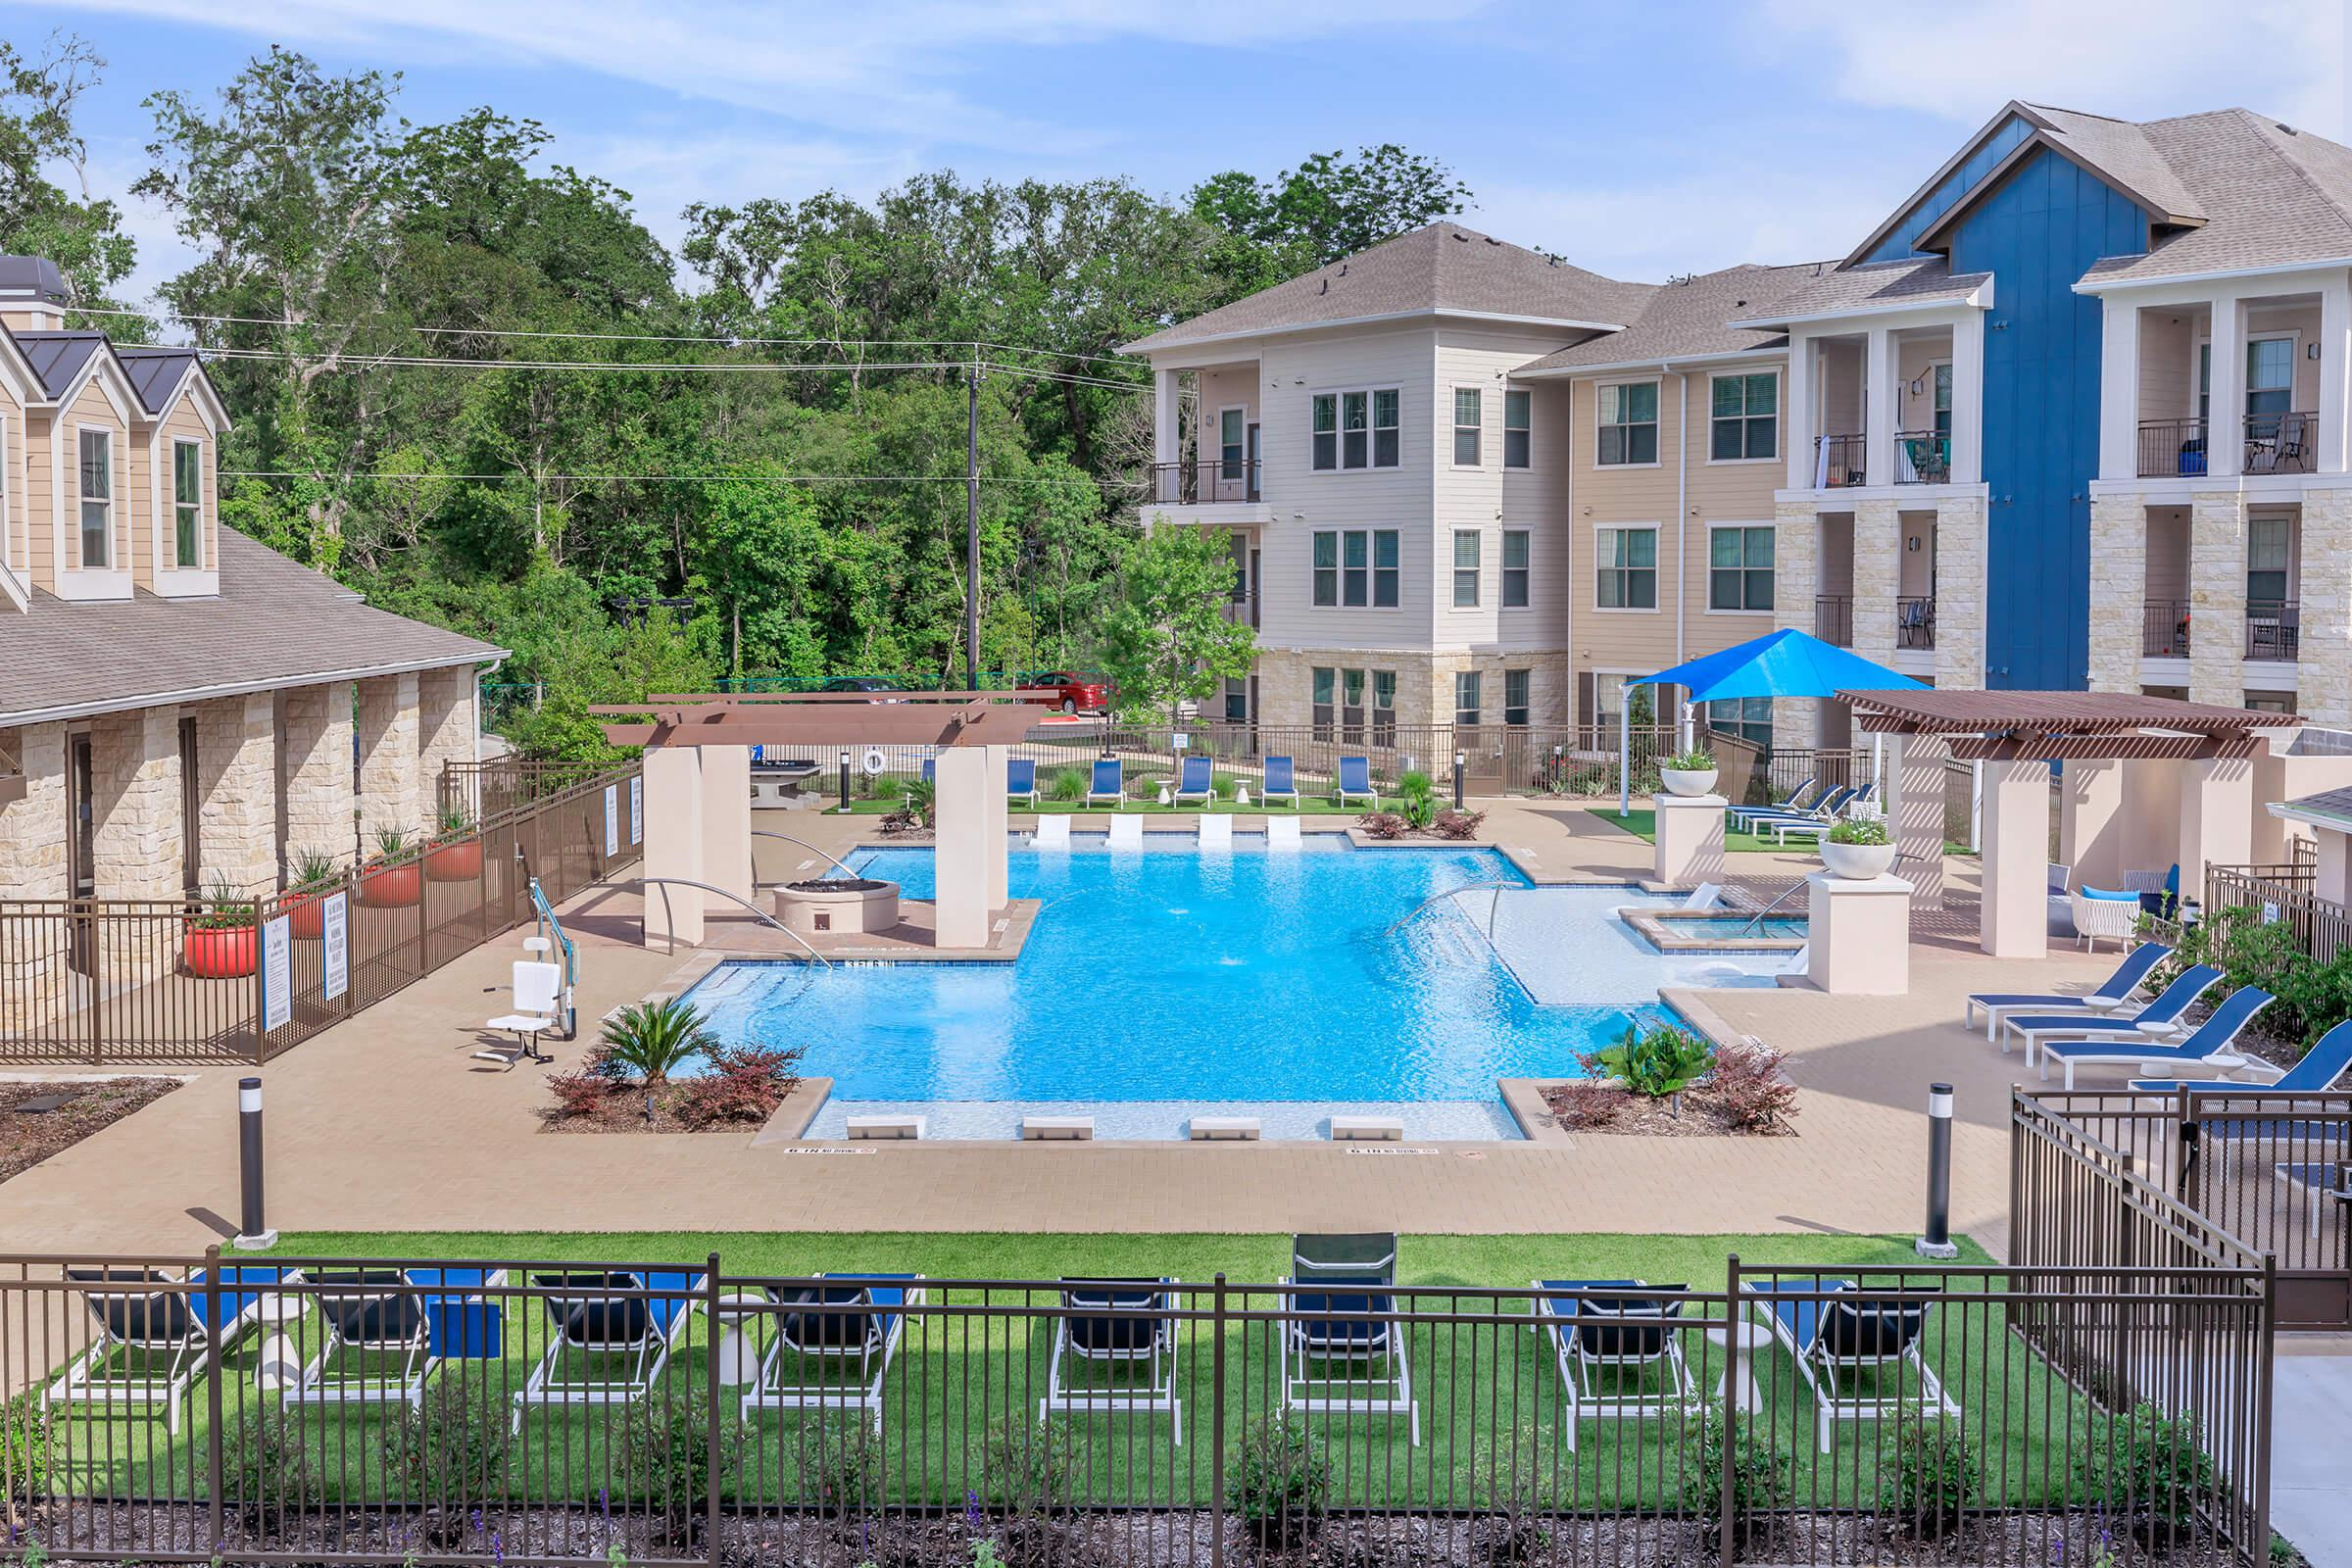 TAKE THE PLUNGE IN OUR SHIMMERING SWIMMING POOL IN LAKE JACKSON, TEXAS!